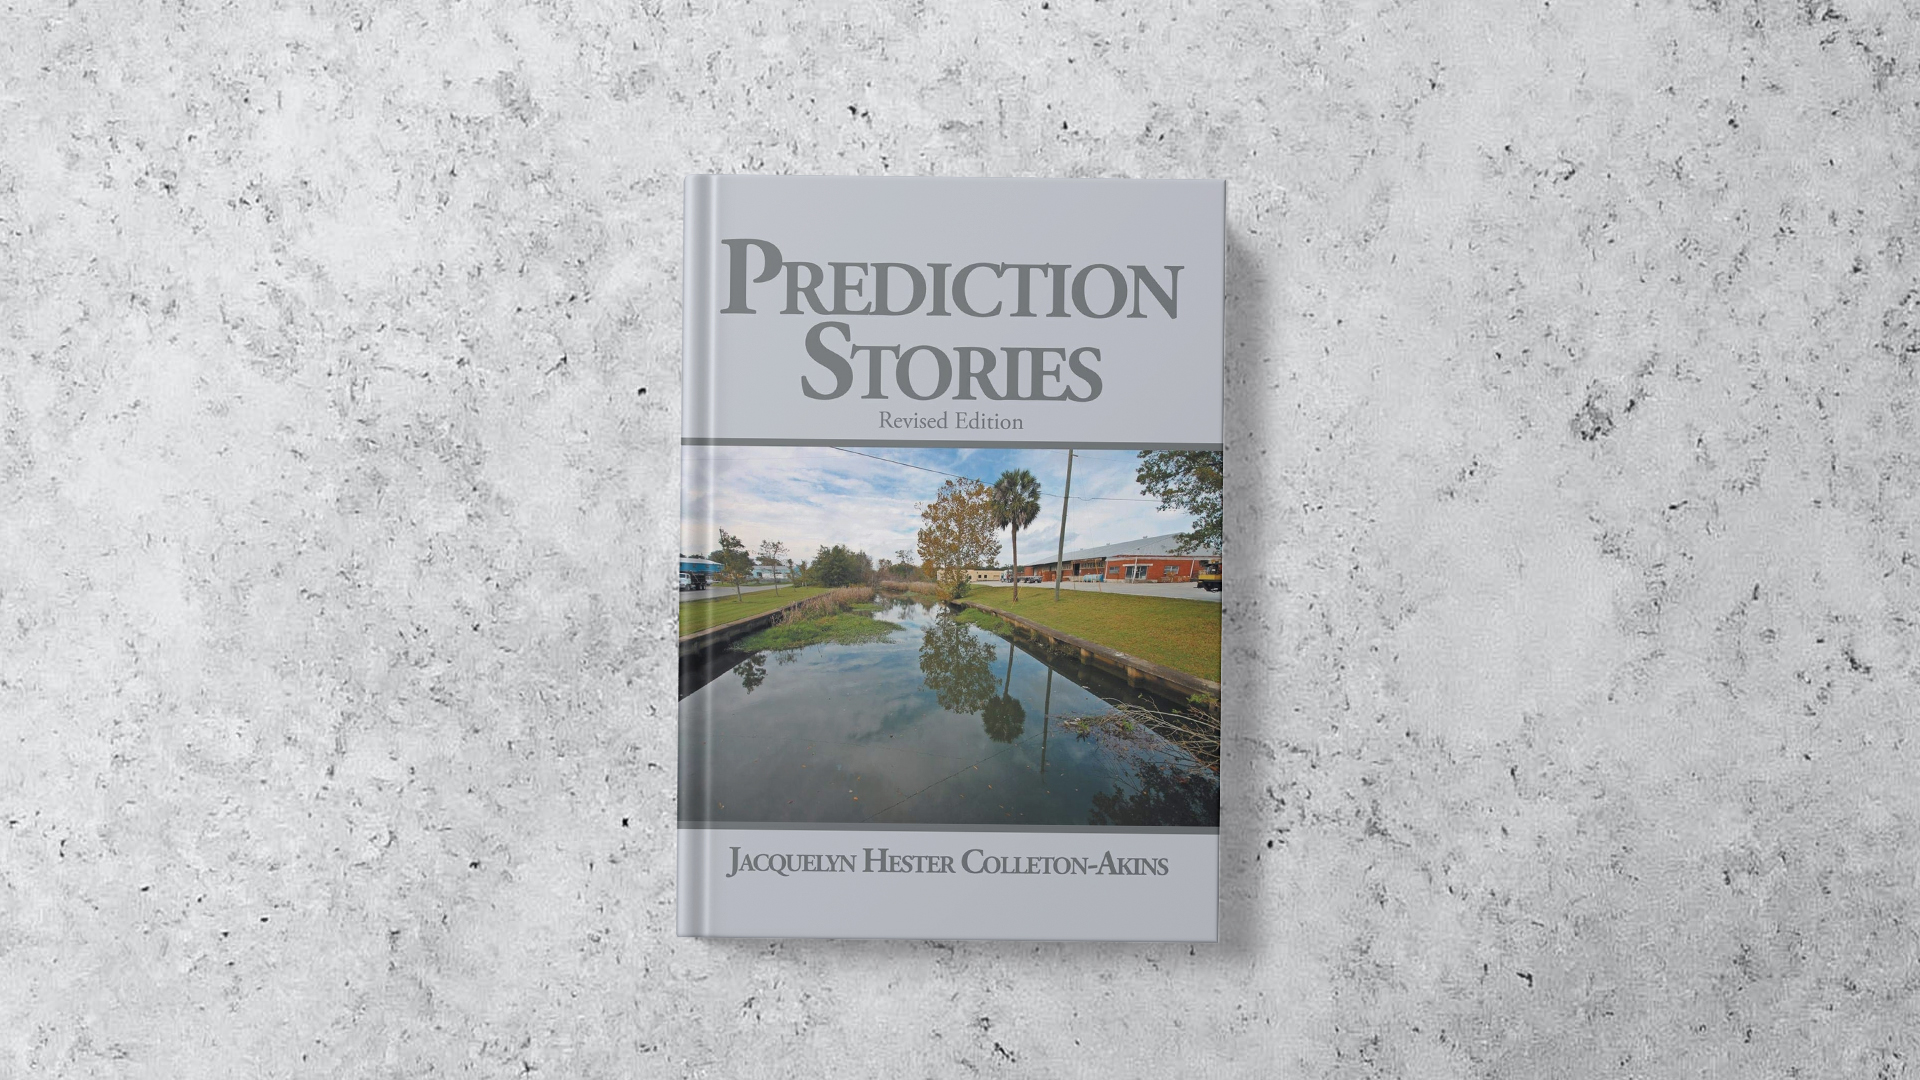 Prediction Stories by Jacquelyn Hester Colleton-Akins banner